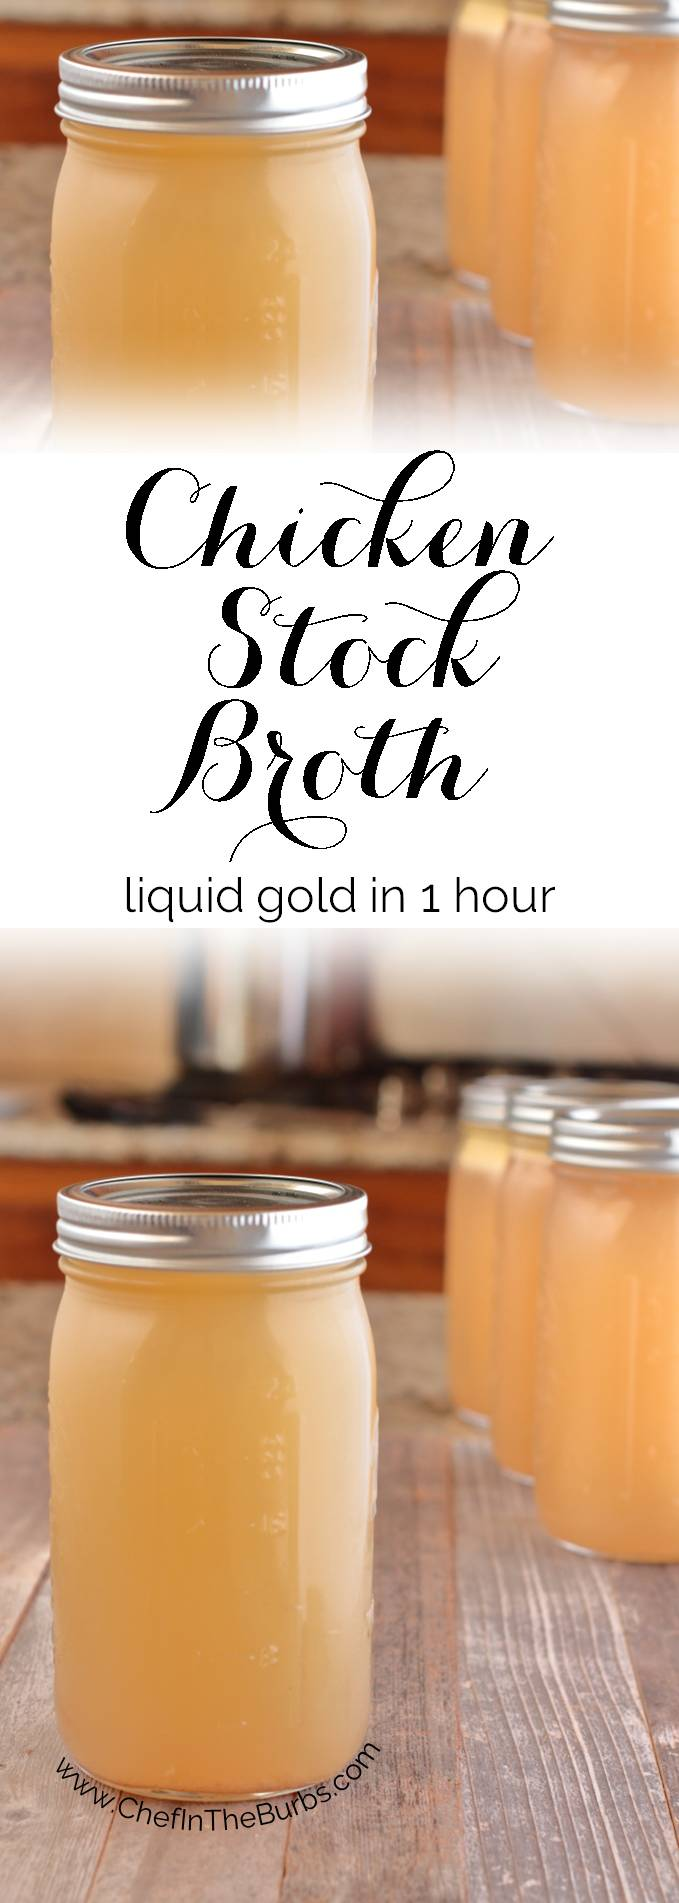 Chicken Stock Broth Recipe - Since it's the middle of winter and we're all making soup, stew and other delicious braisey/roasty/simmery things I challenge you to make your own chicken broth even if you only do it once. It seriously will take you back. Back to when chicken broth tasted like…wait for it…chicken.